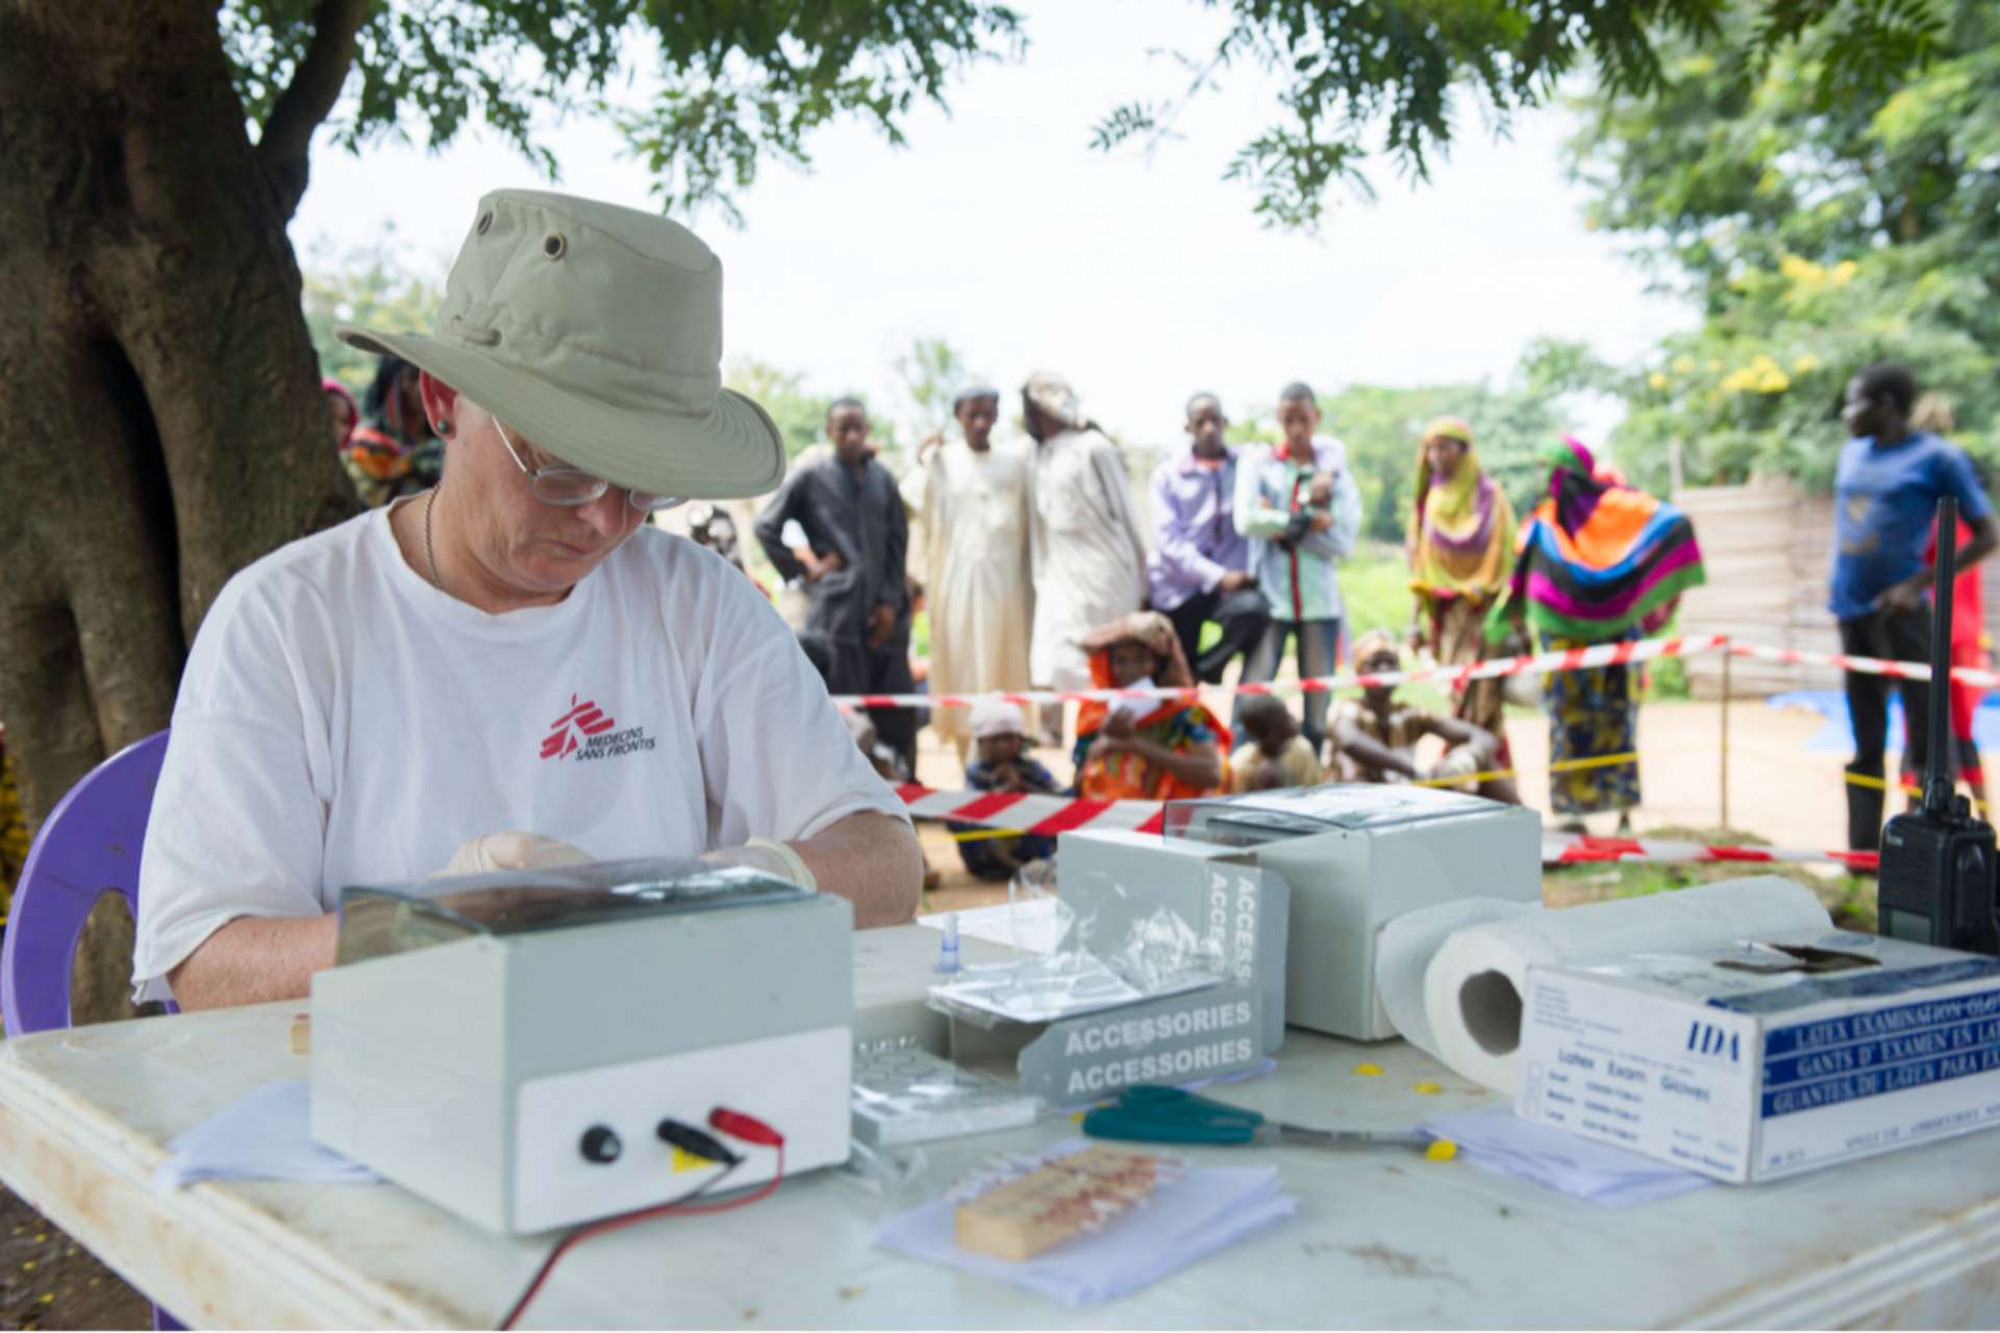 Academic working on testing in an African village